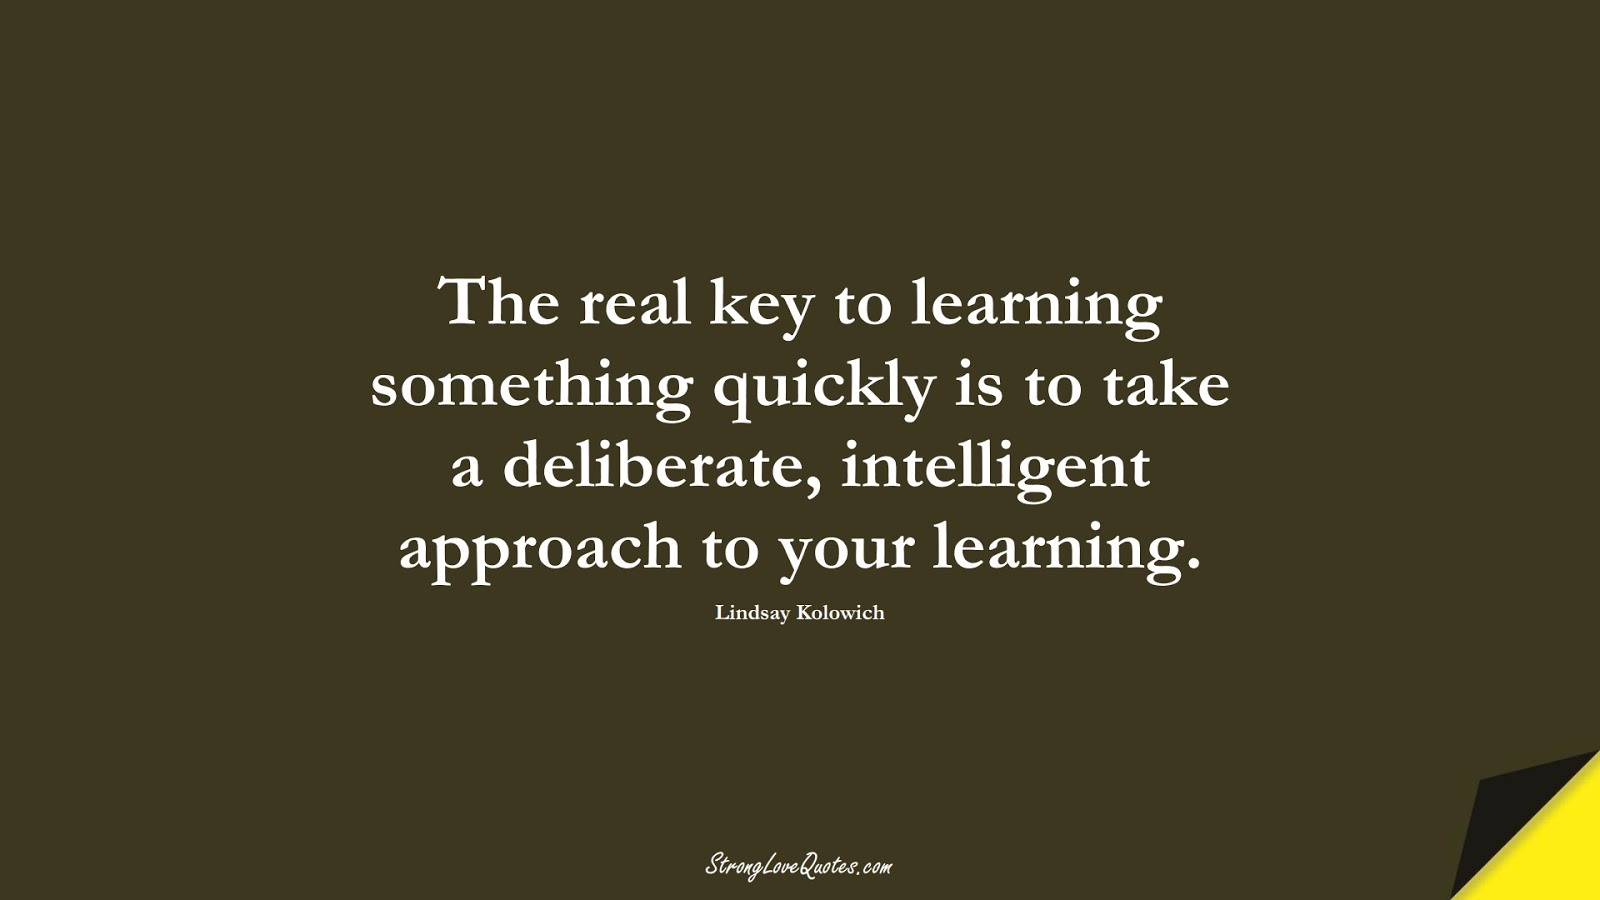 The real key to learning something quickly is to take a deliberate, intelligent approach to your learning. (Lindsay Kolowich);  #EducationQuotes